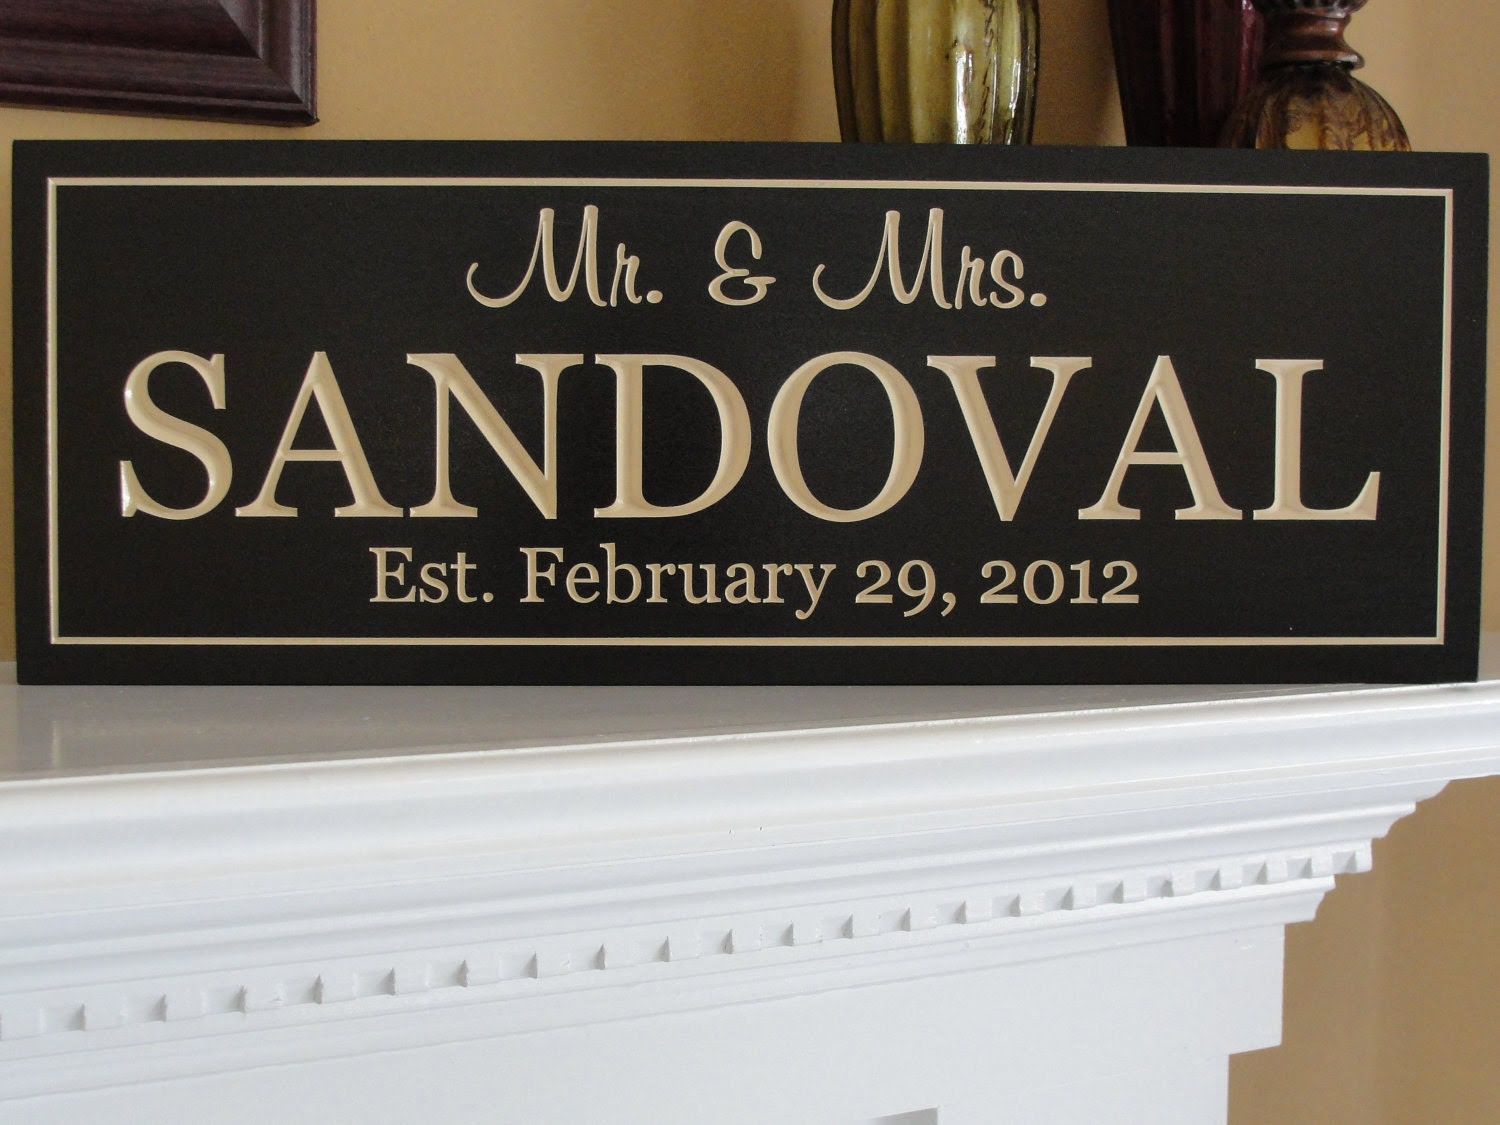 signs of personalized  handmade Signs Established  Personalized Rustic  rustic signs Size name Name